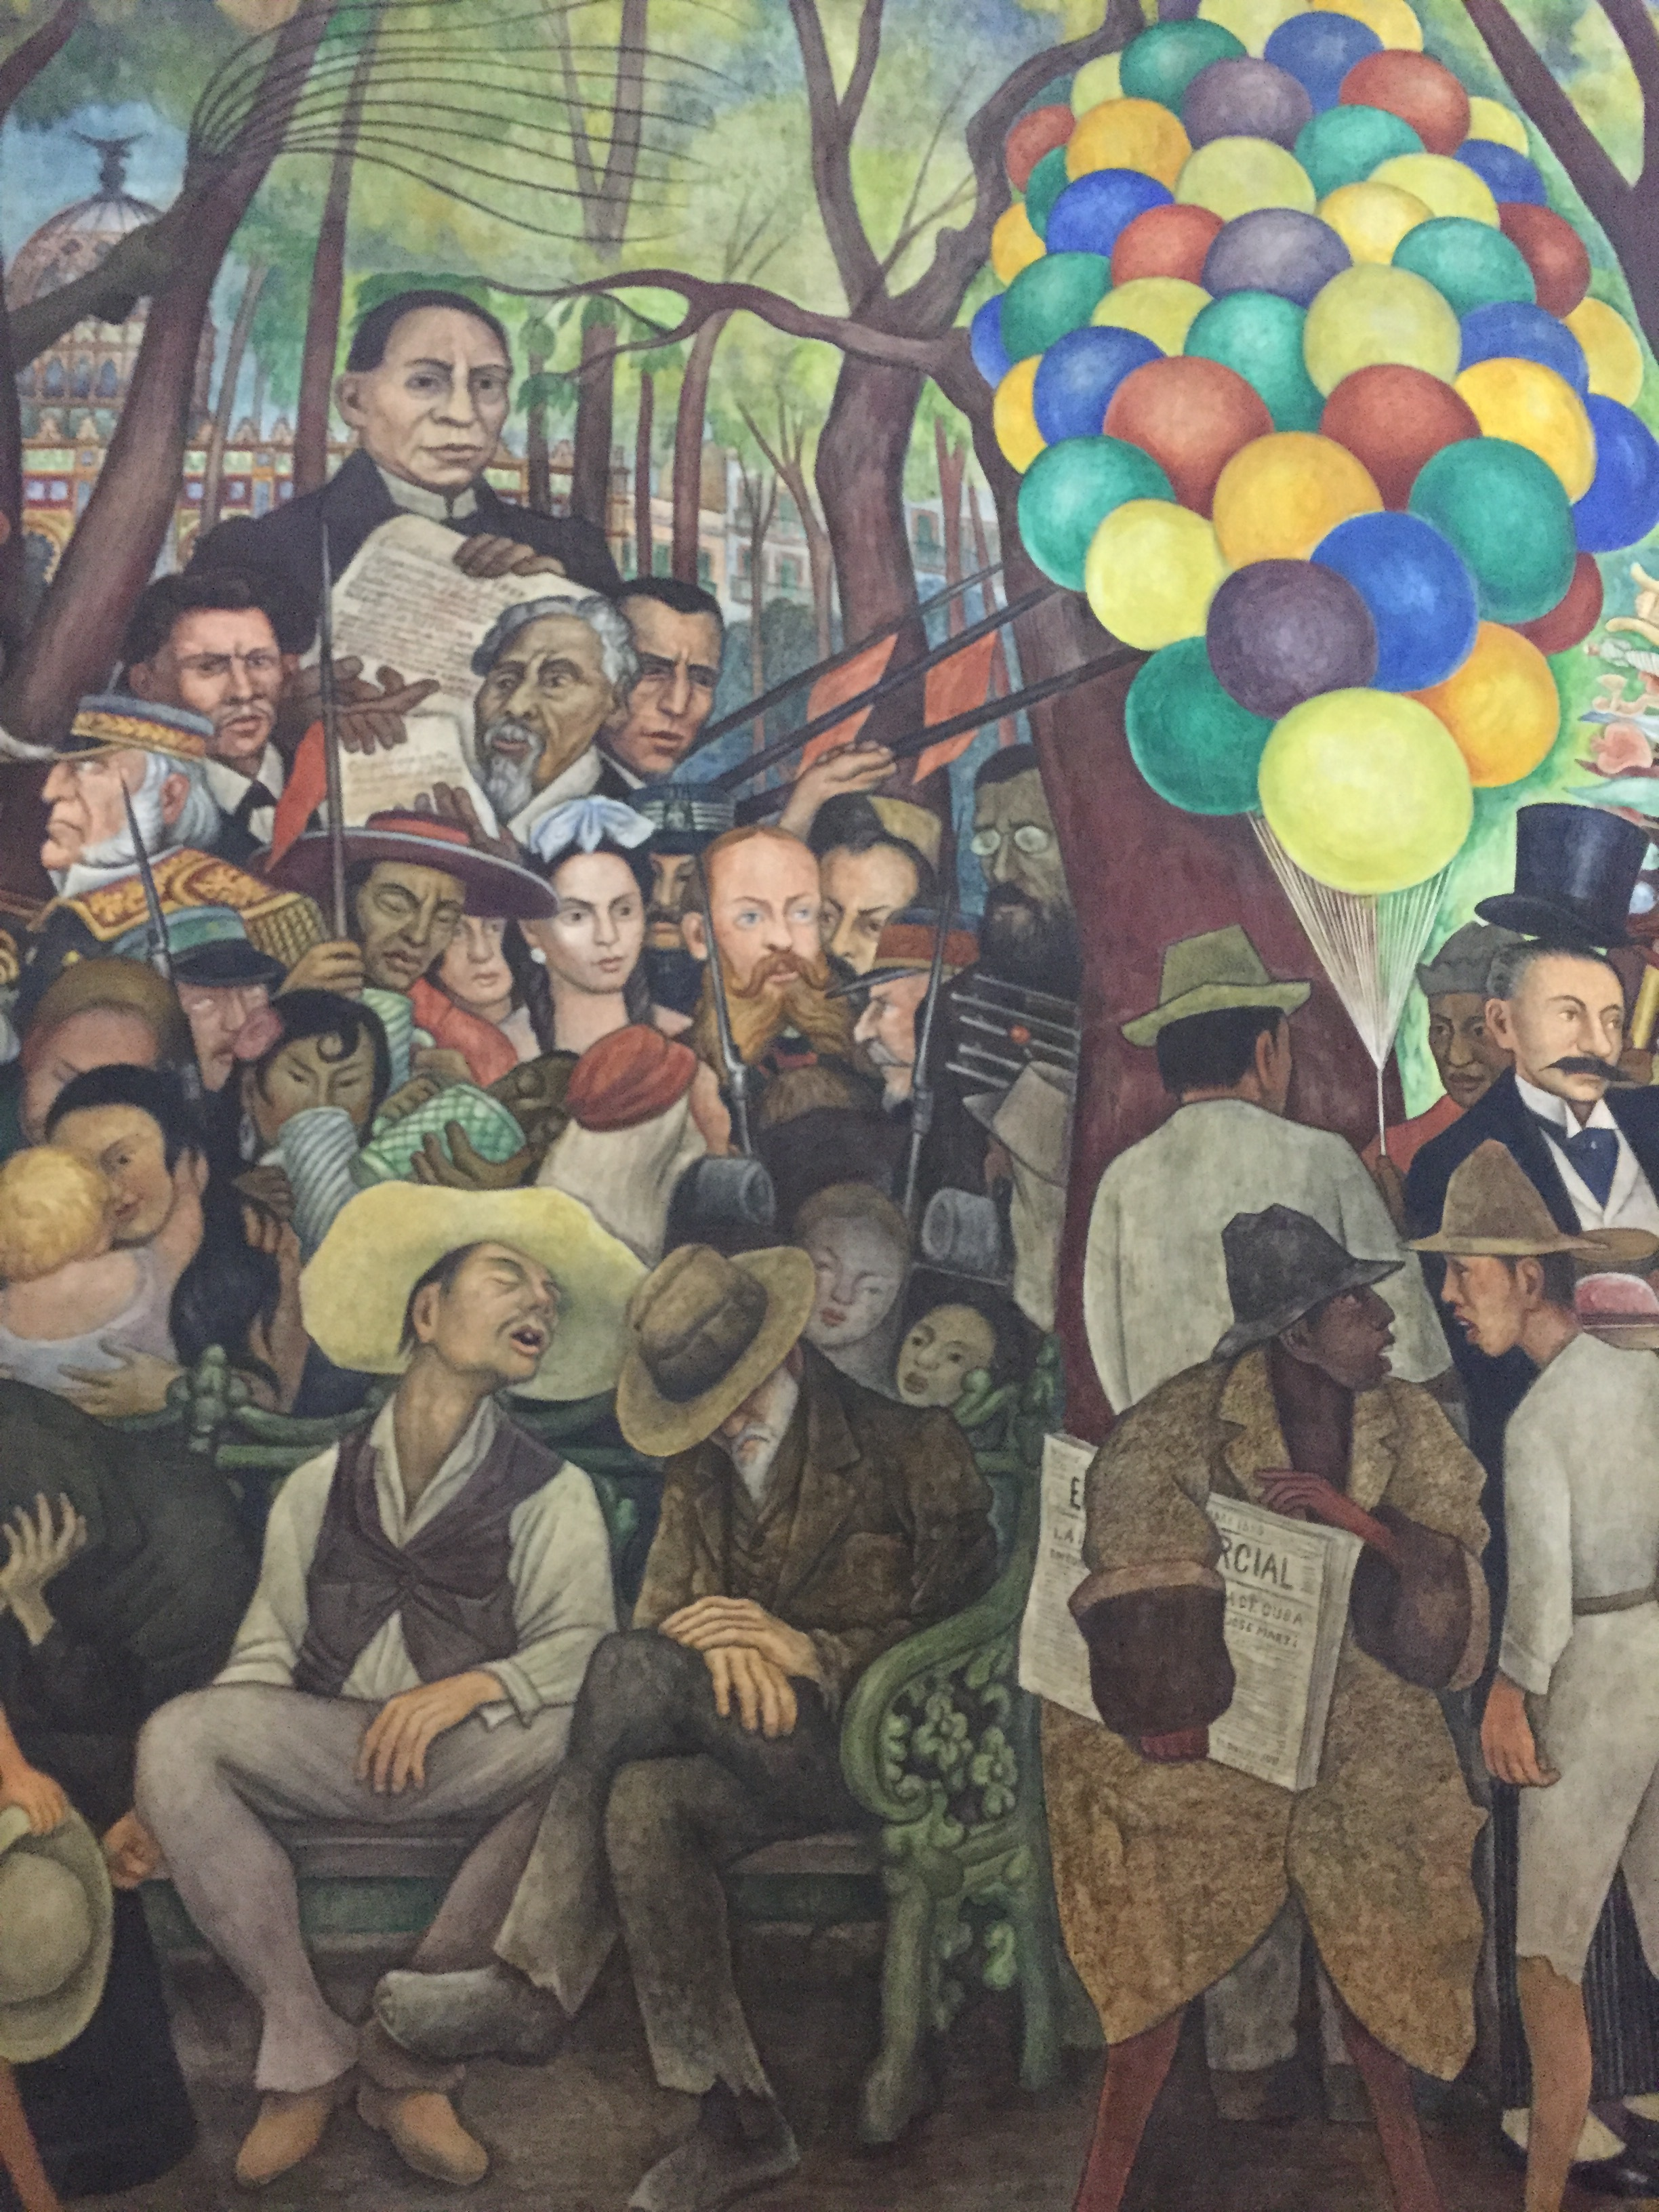 Center left portion of mural